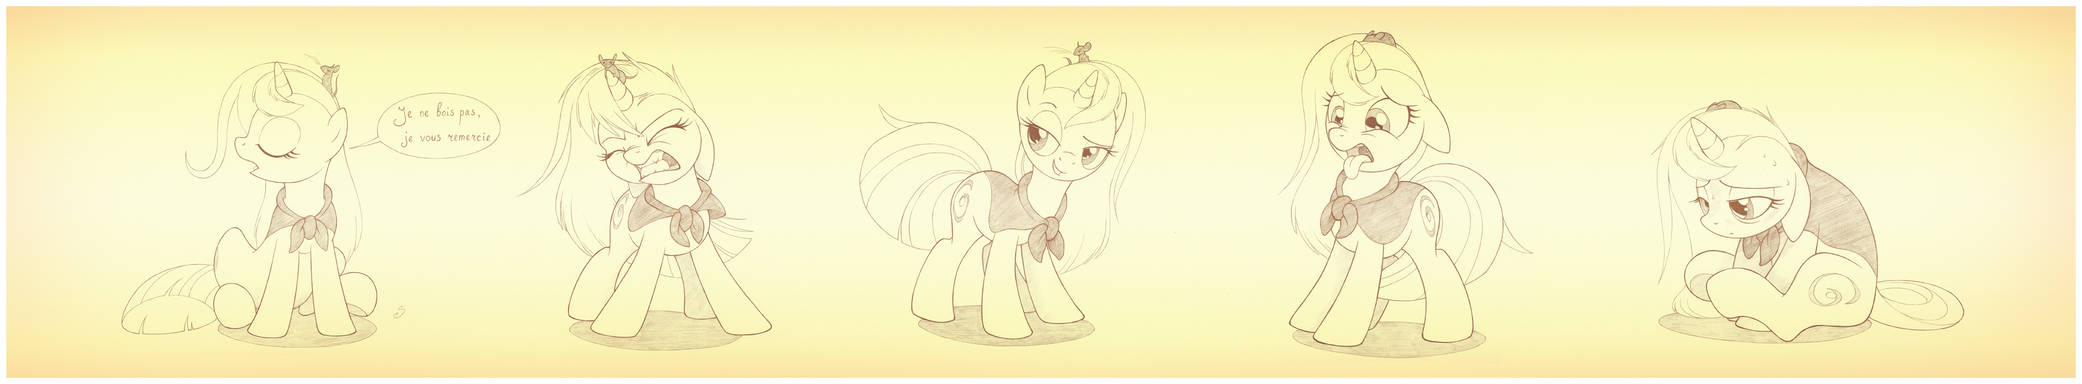 Eri Expressions 5 by sherwoodwhisper